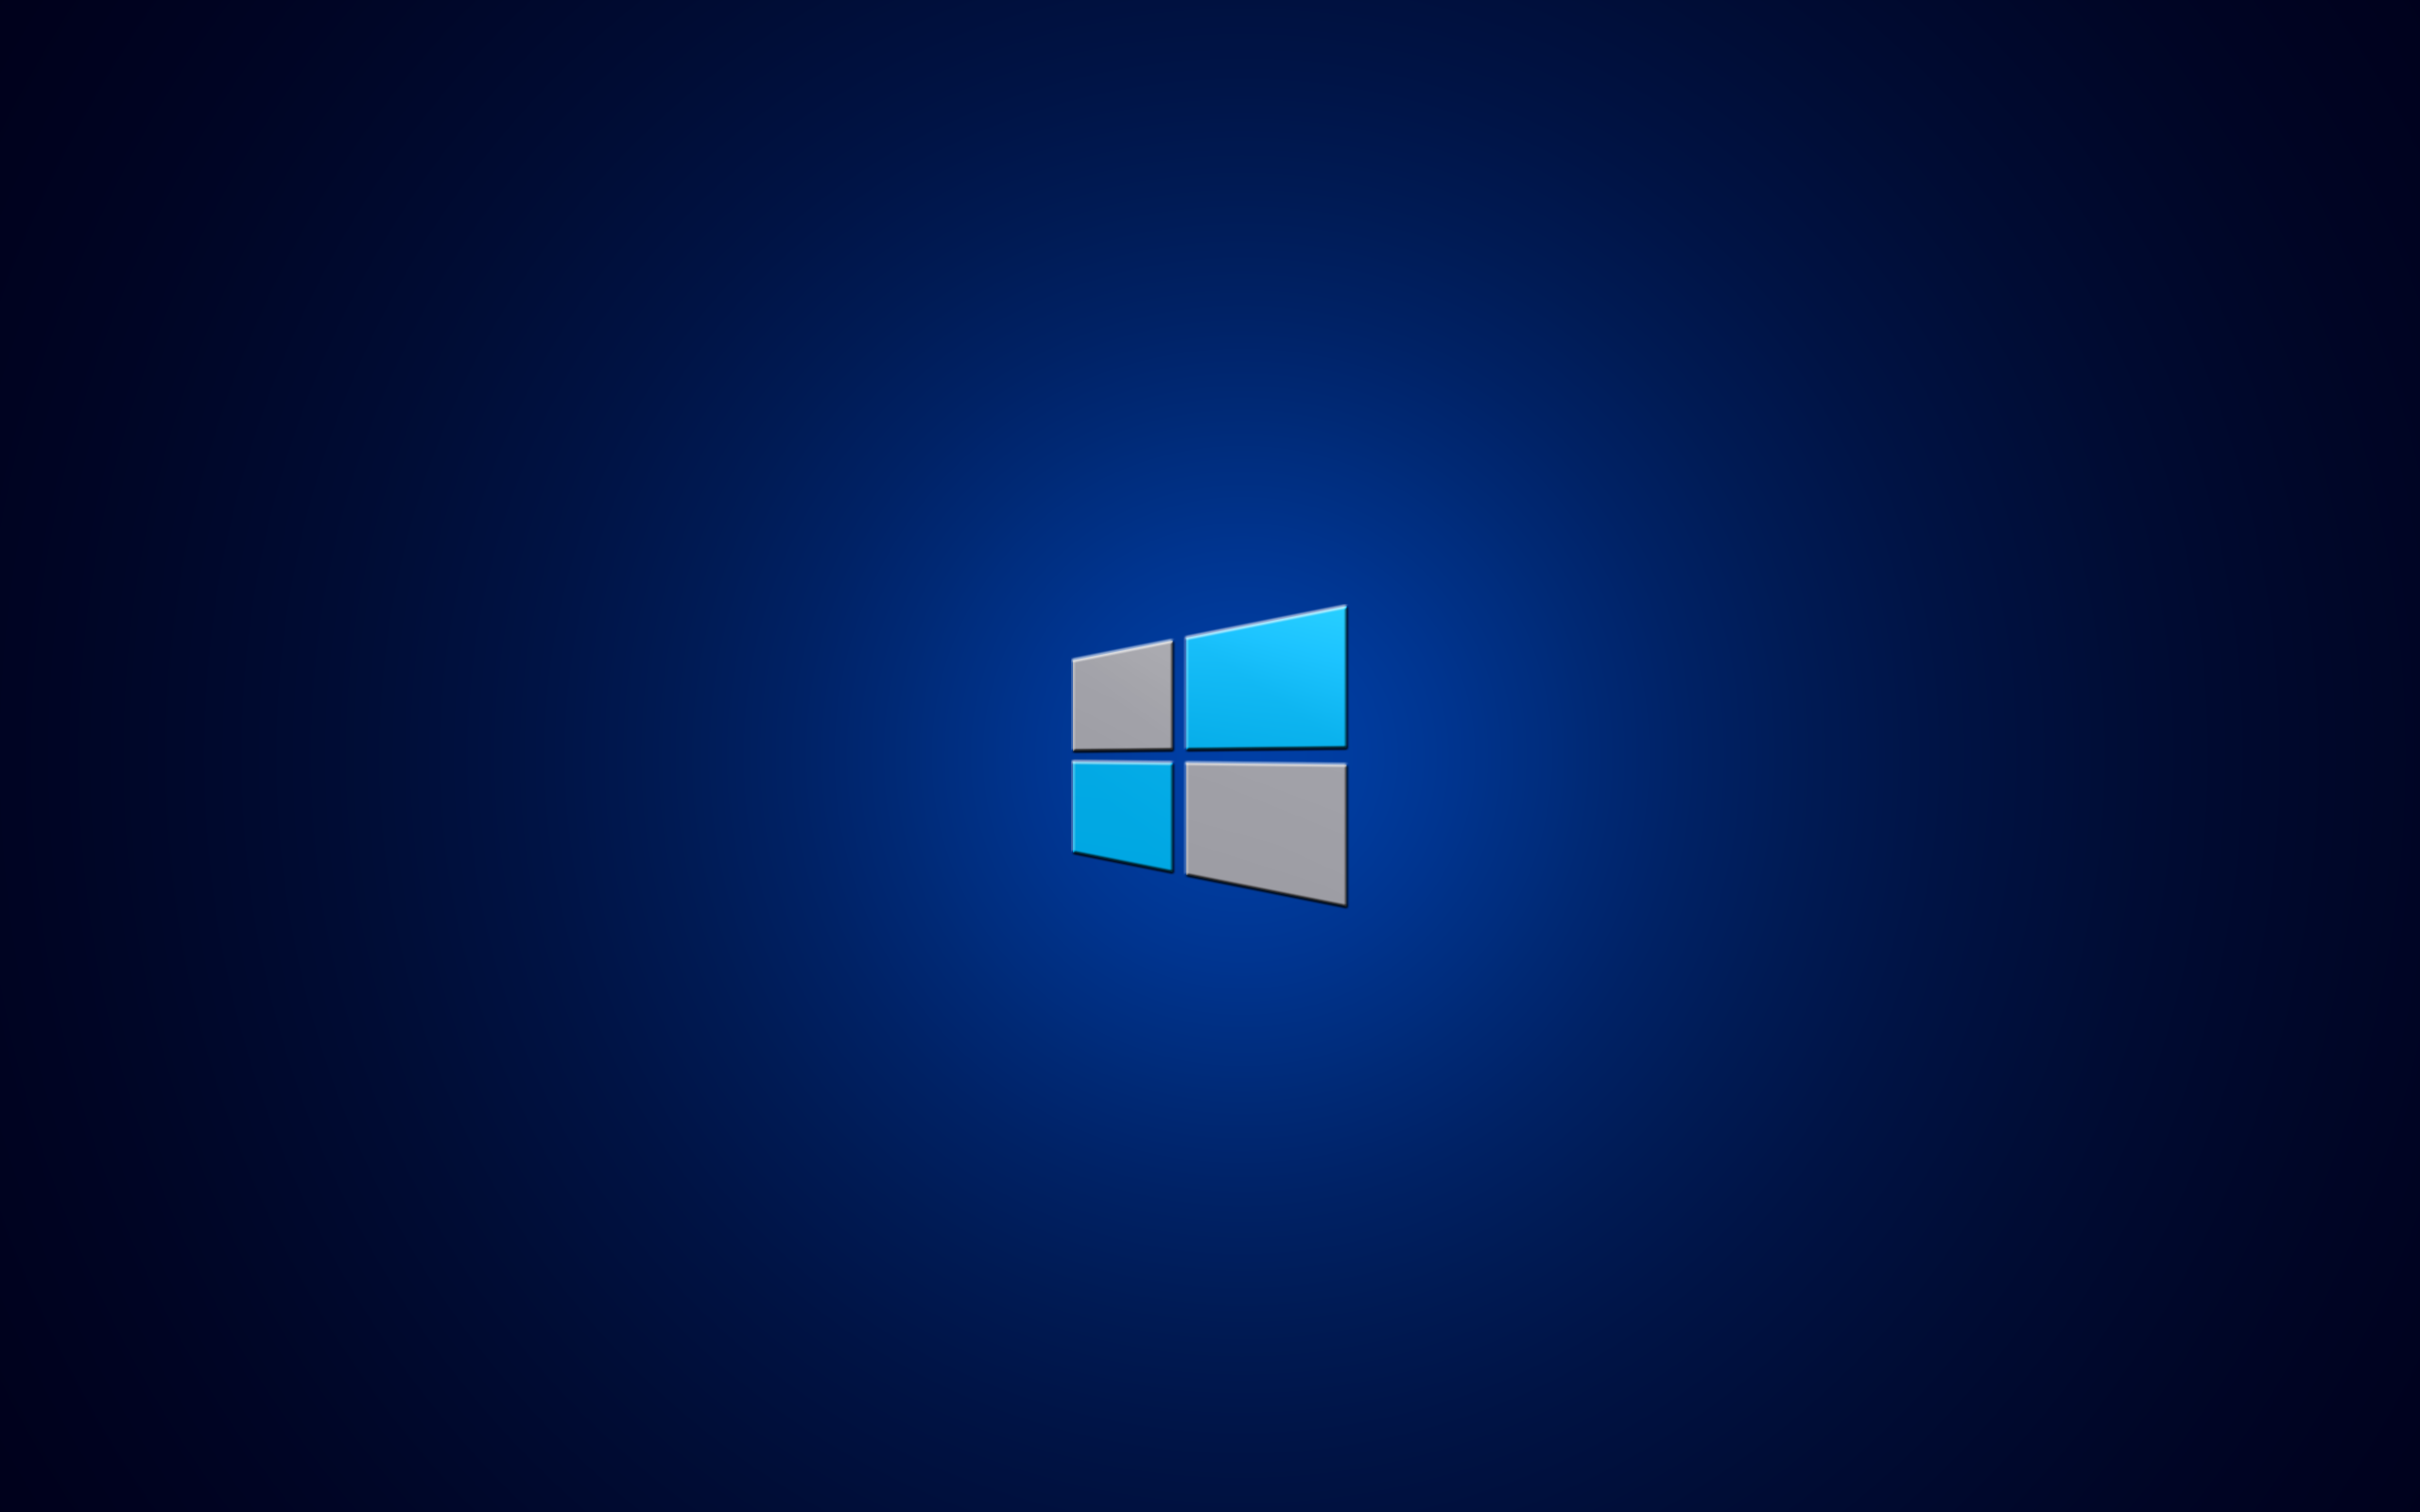 The new Windows 8 logo wallpaper background 2560x1600